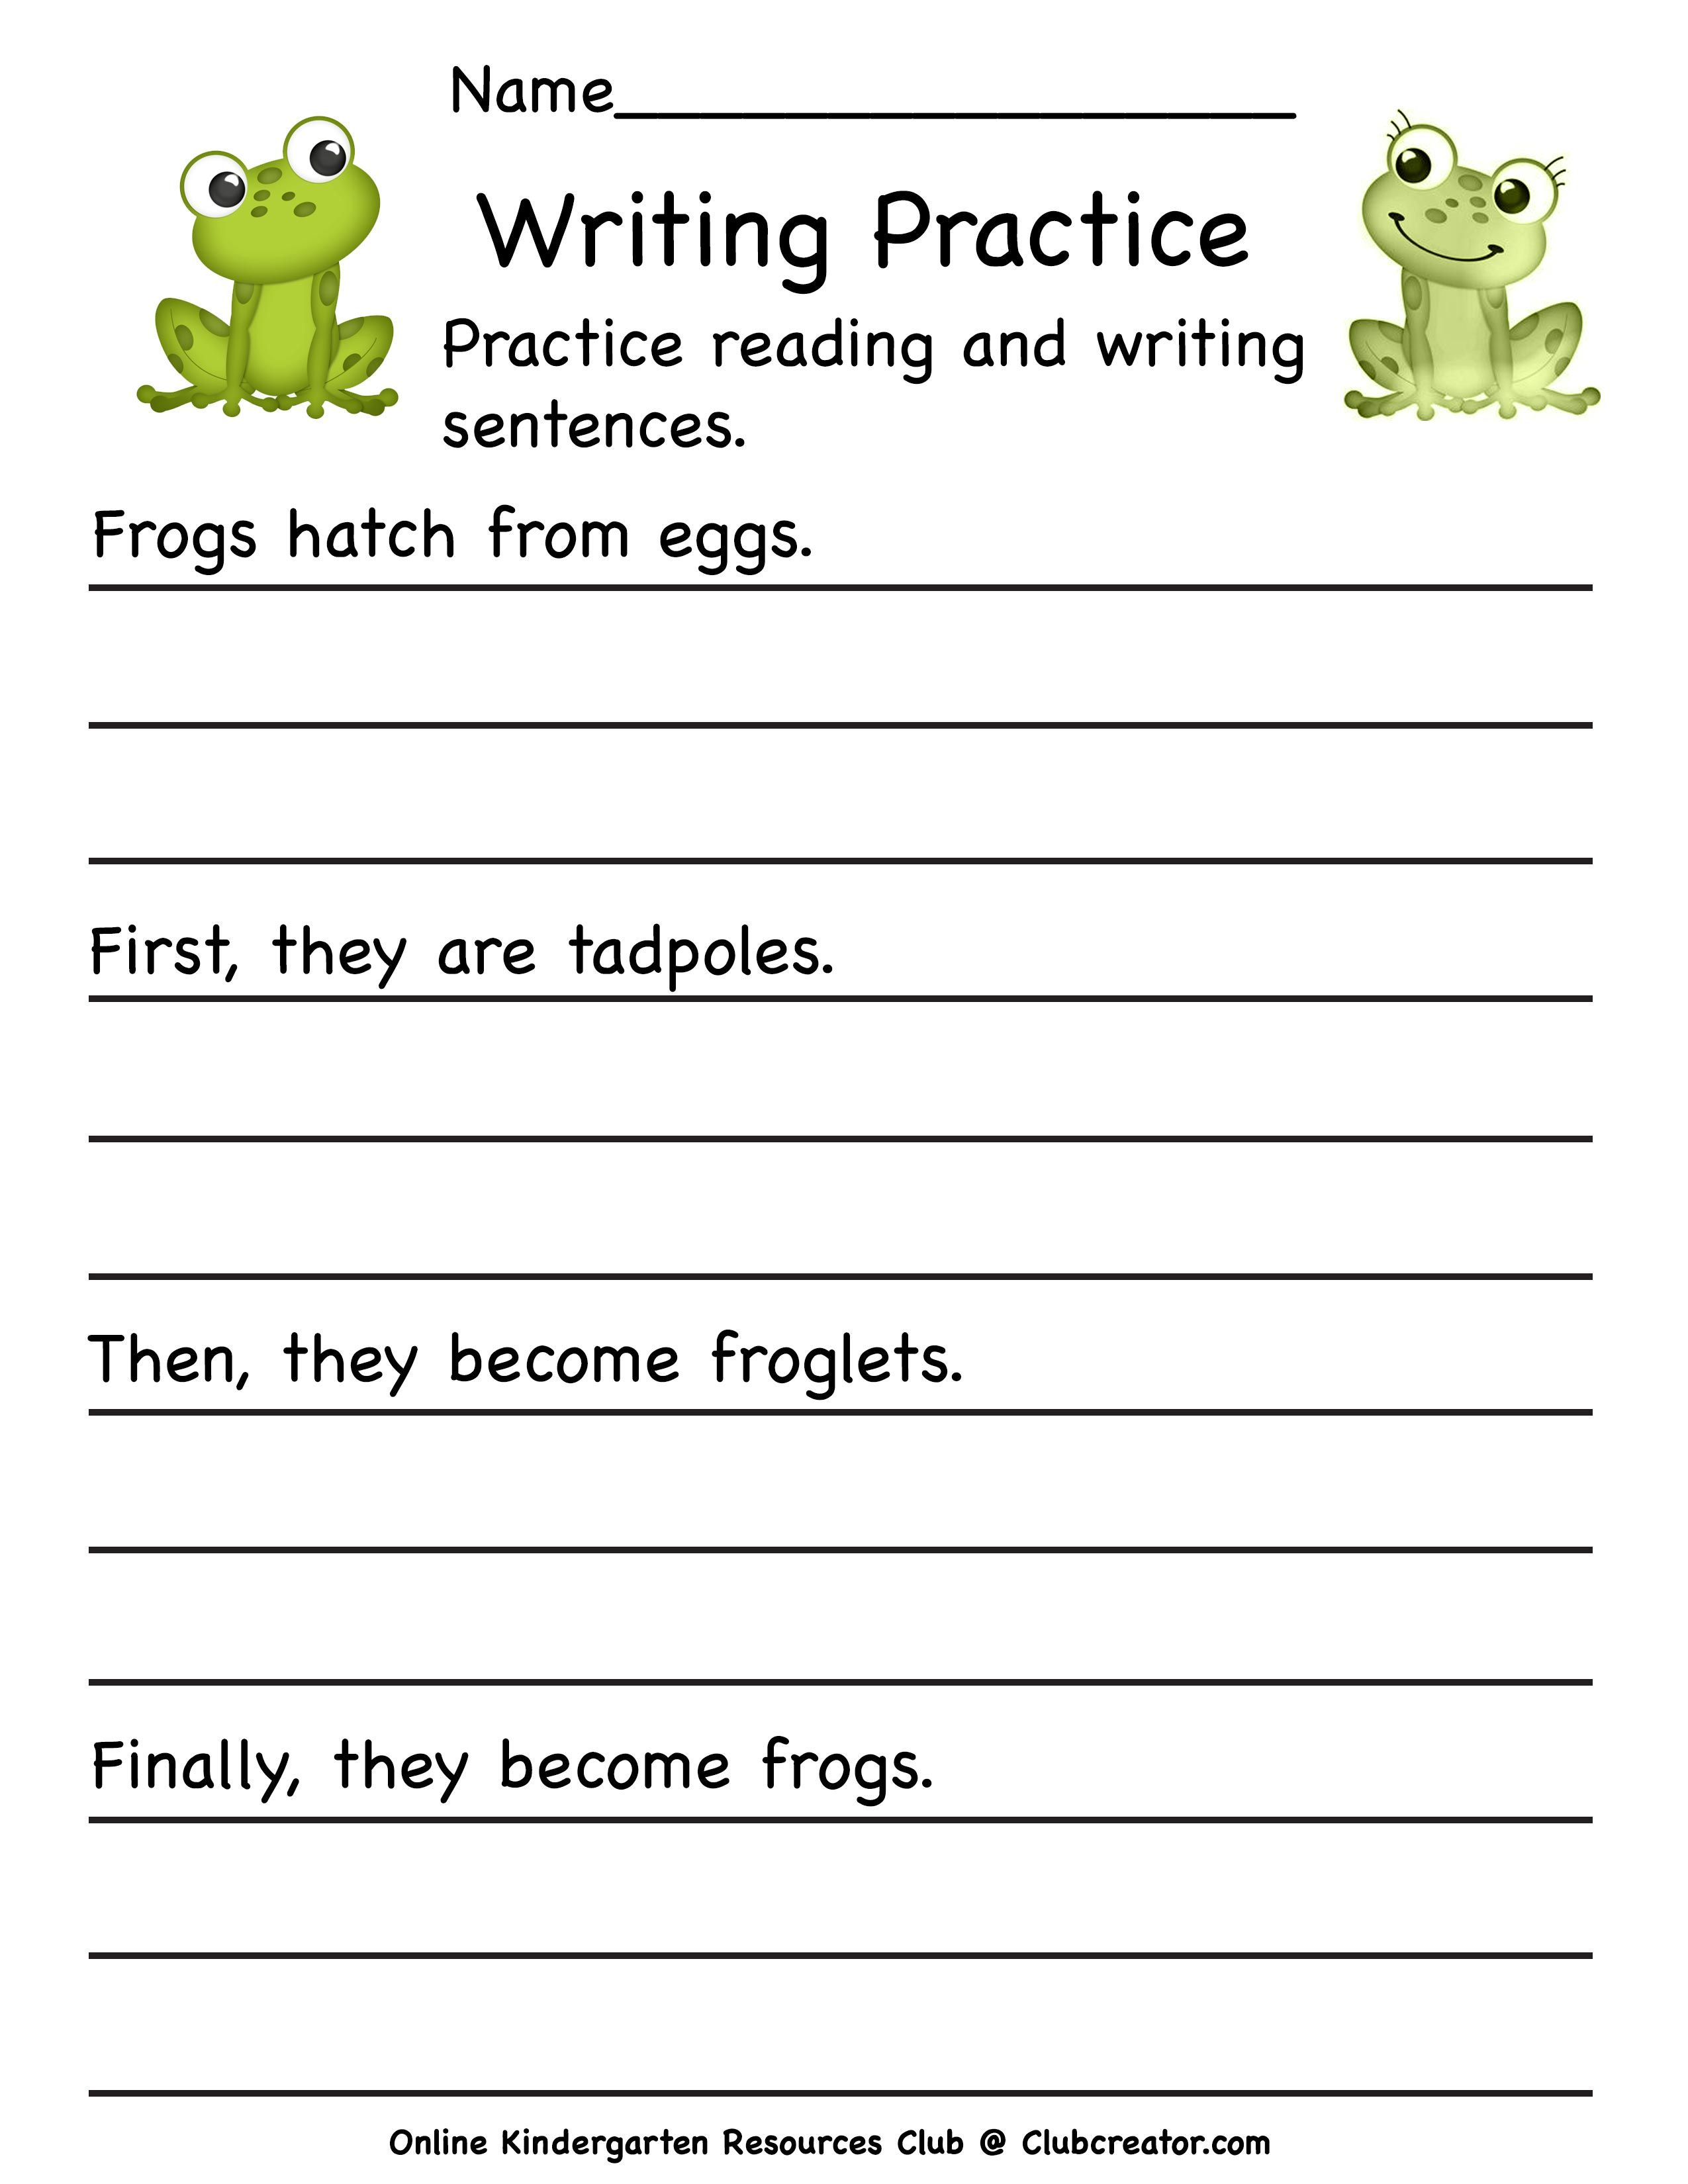 Frog Life Cycle Worksheet In